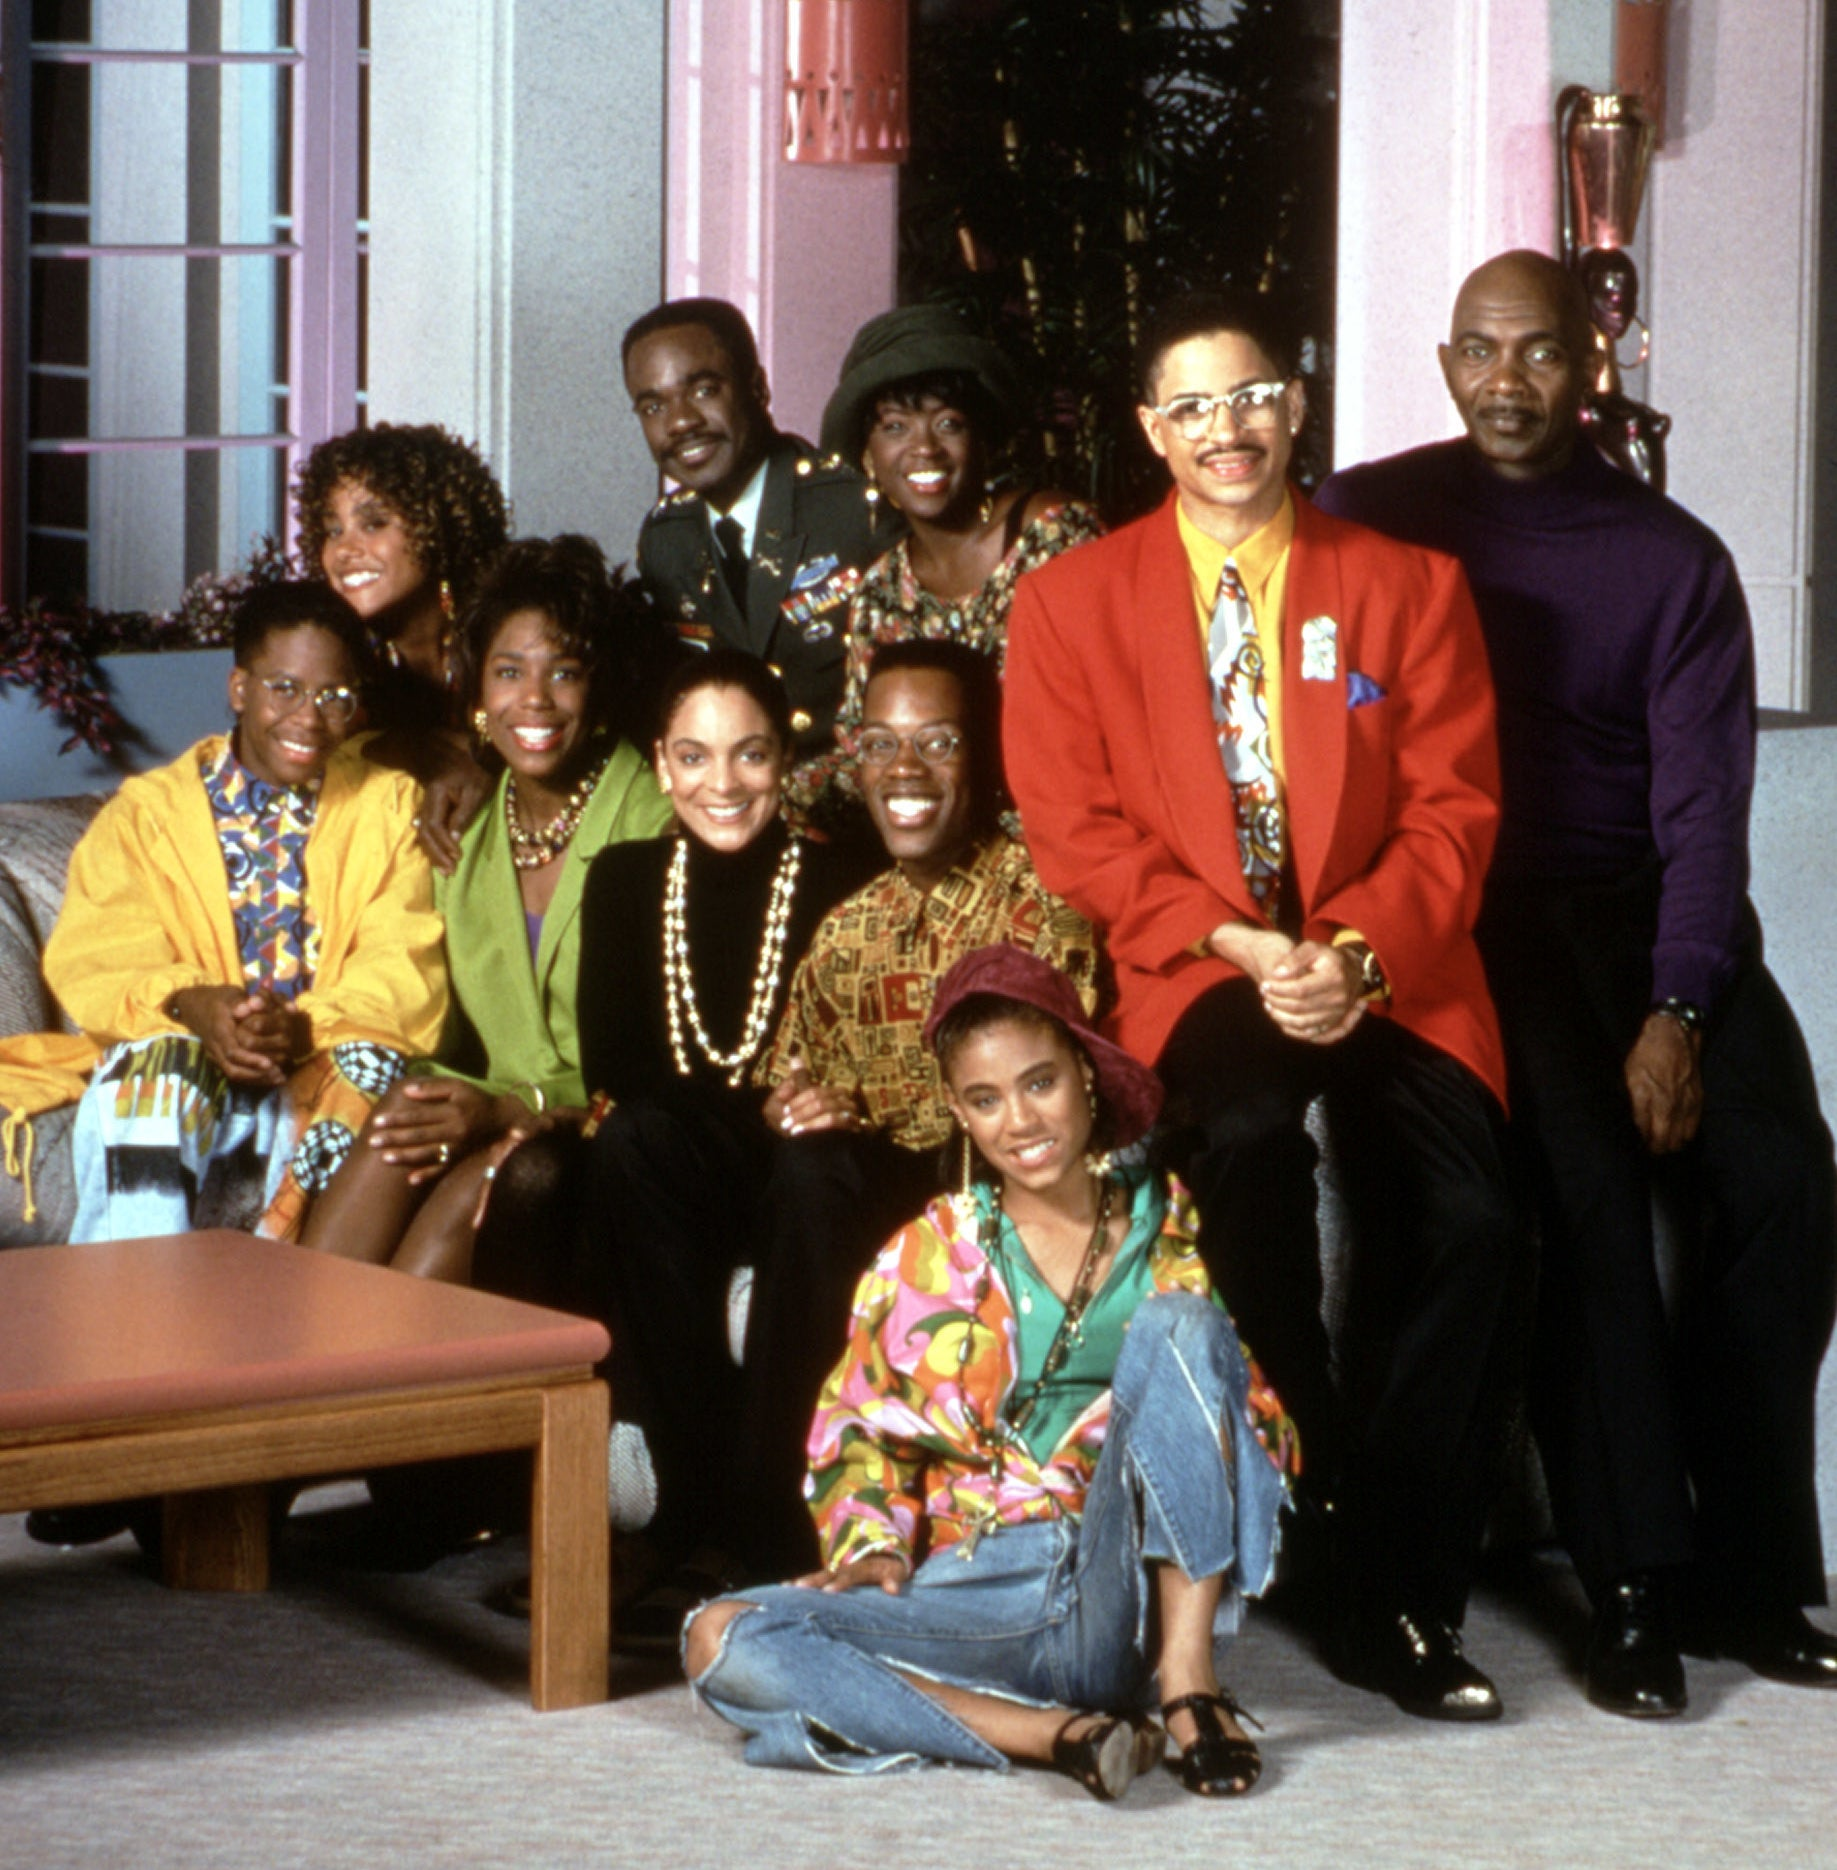 A publicity photo of the Season 6 cast of A Different World